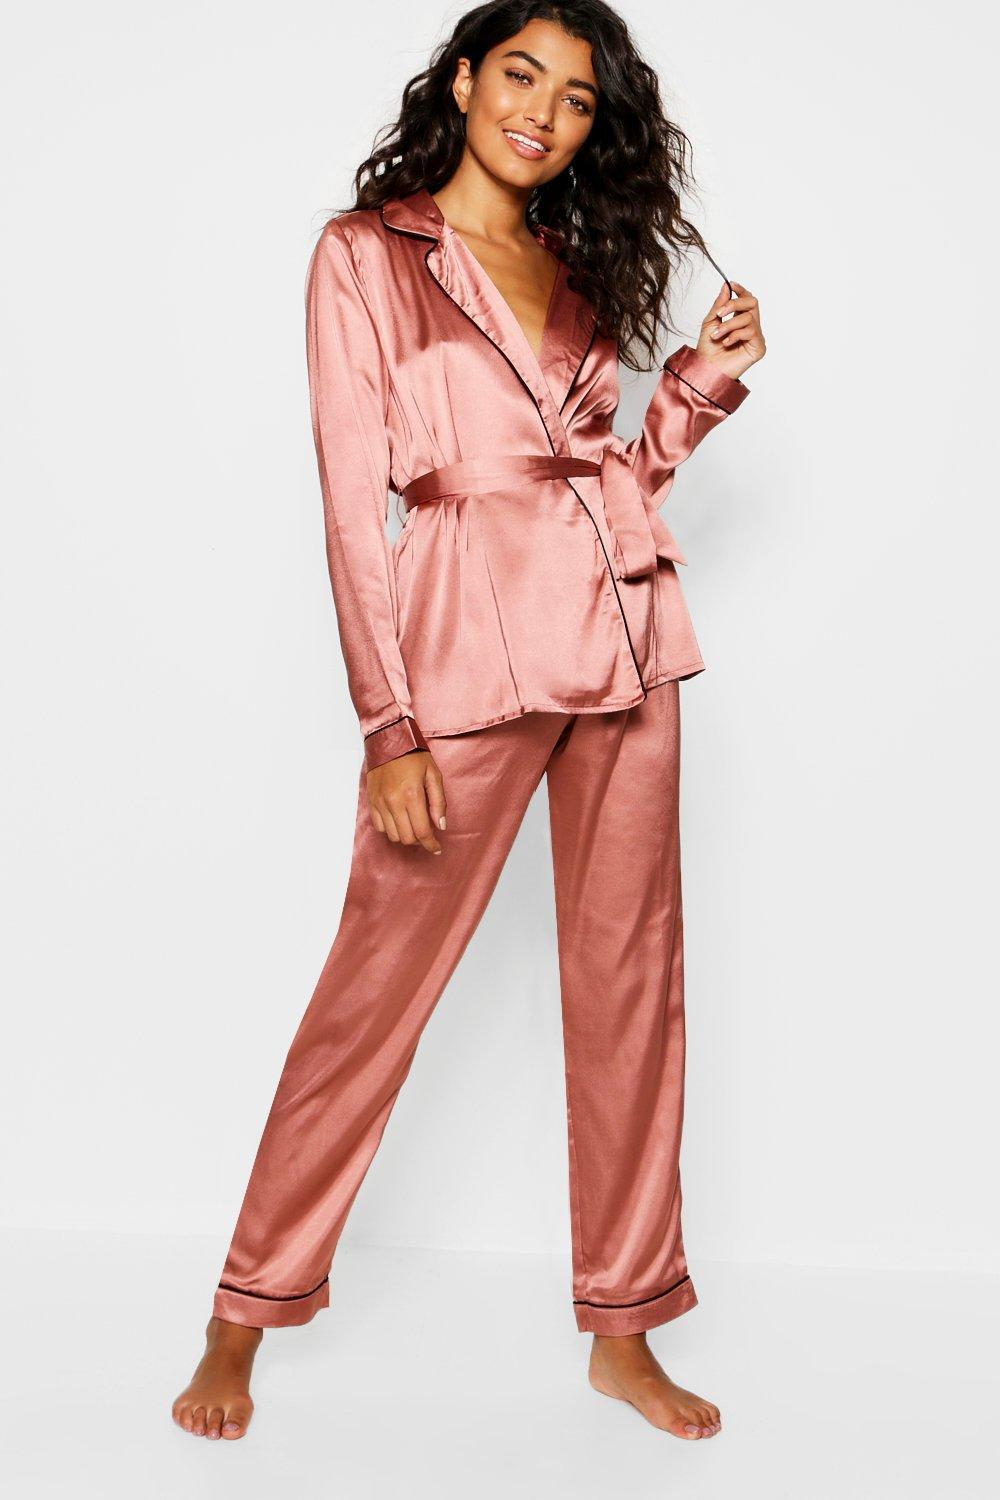 d936327198 Lyst - Boohoo Satin Wrap Front Belted Pj Set in Pink